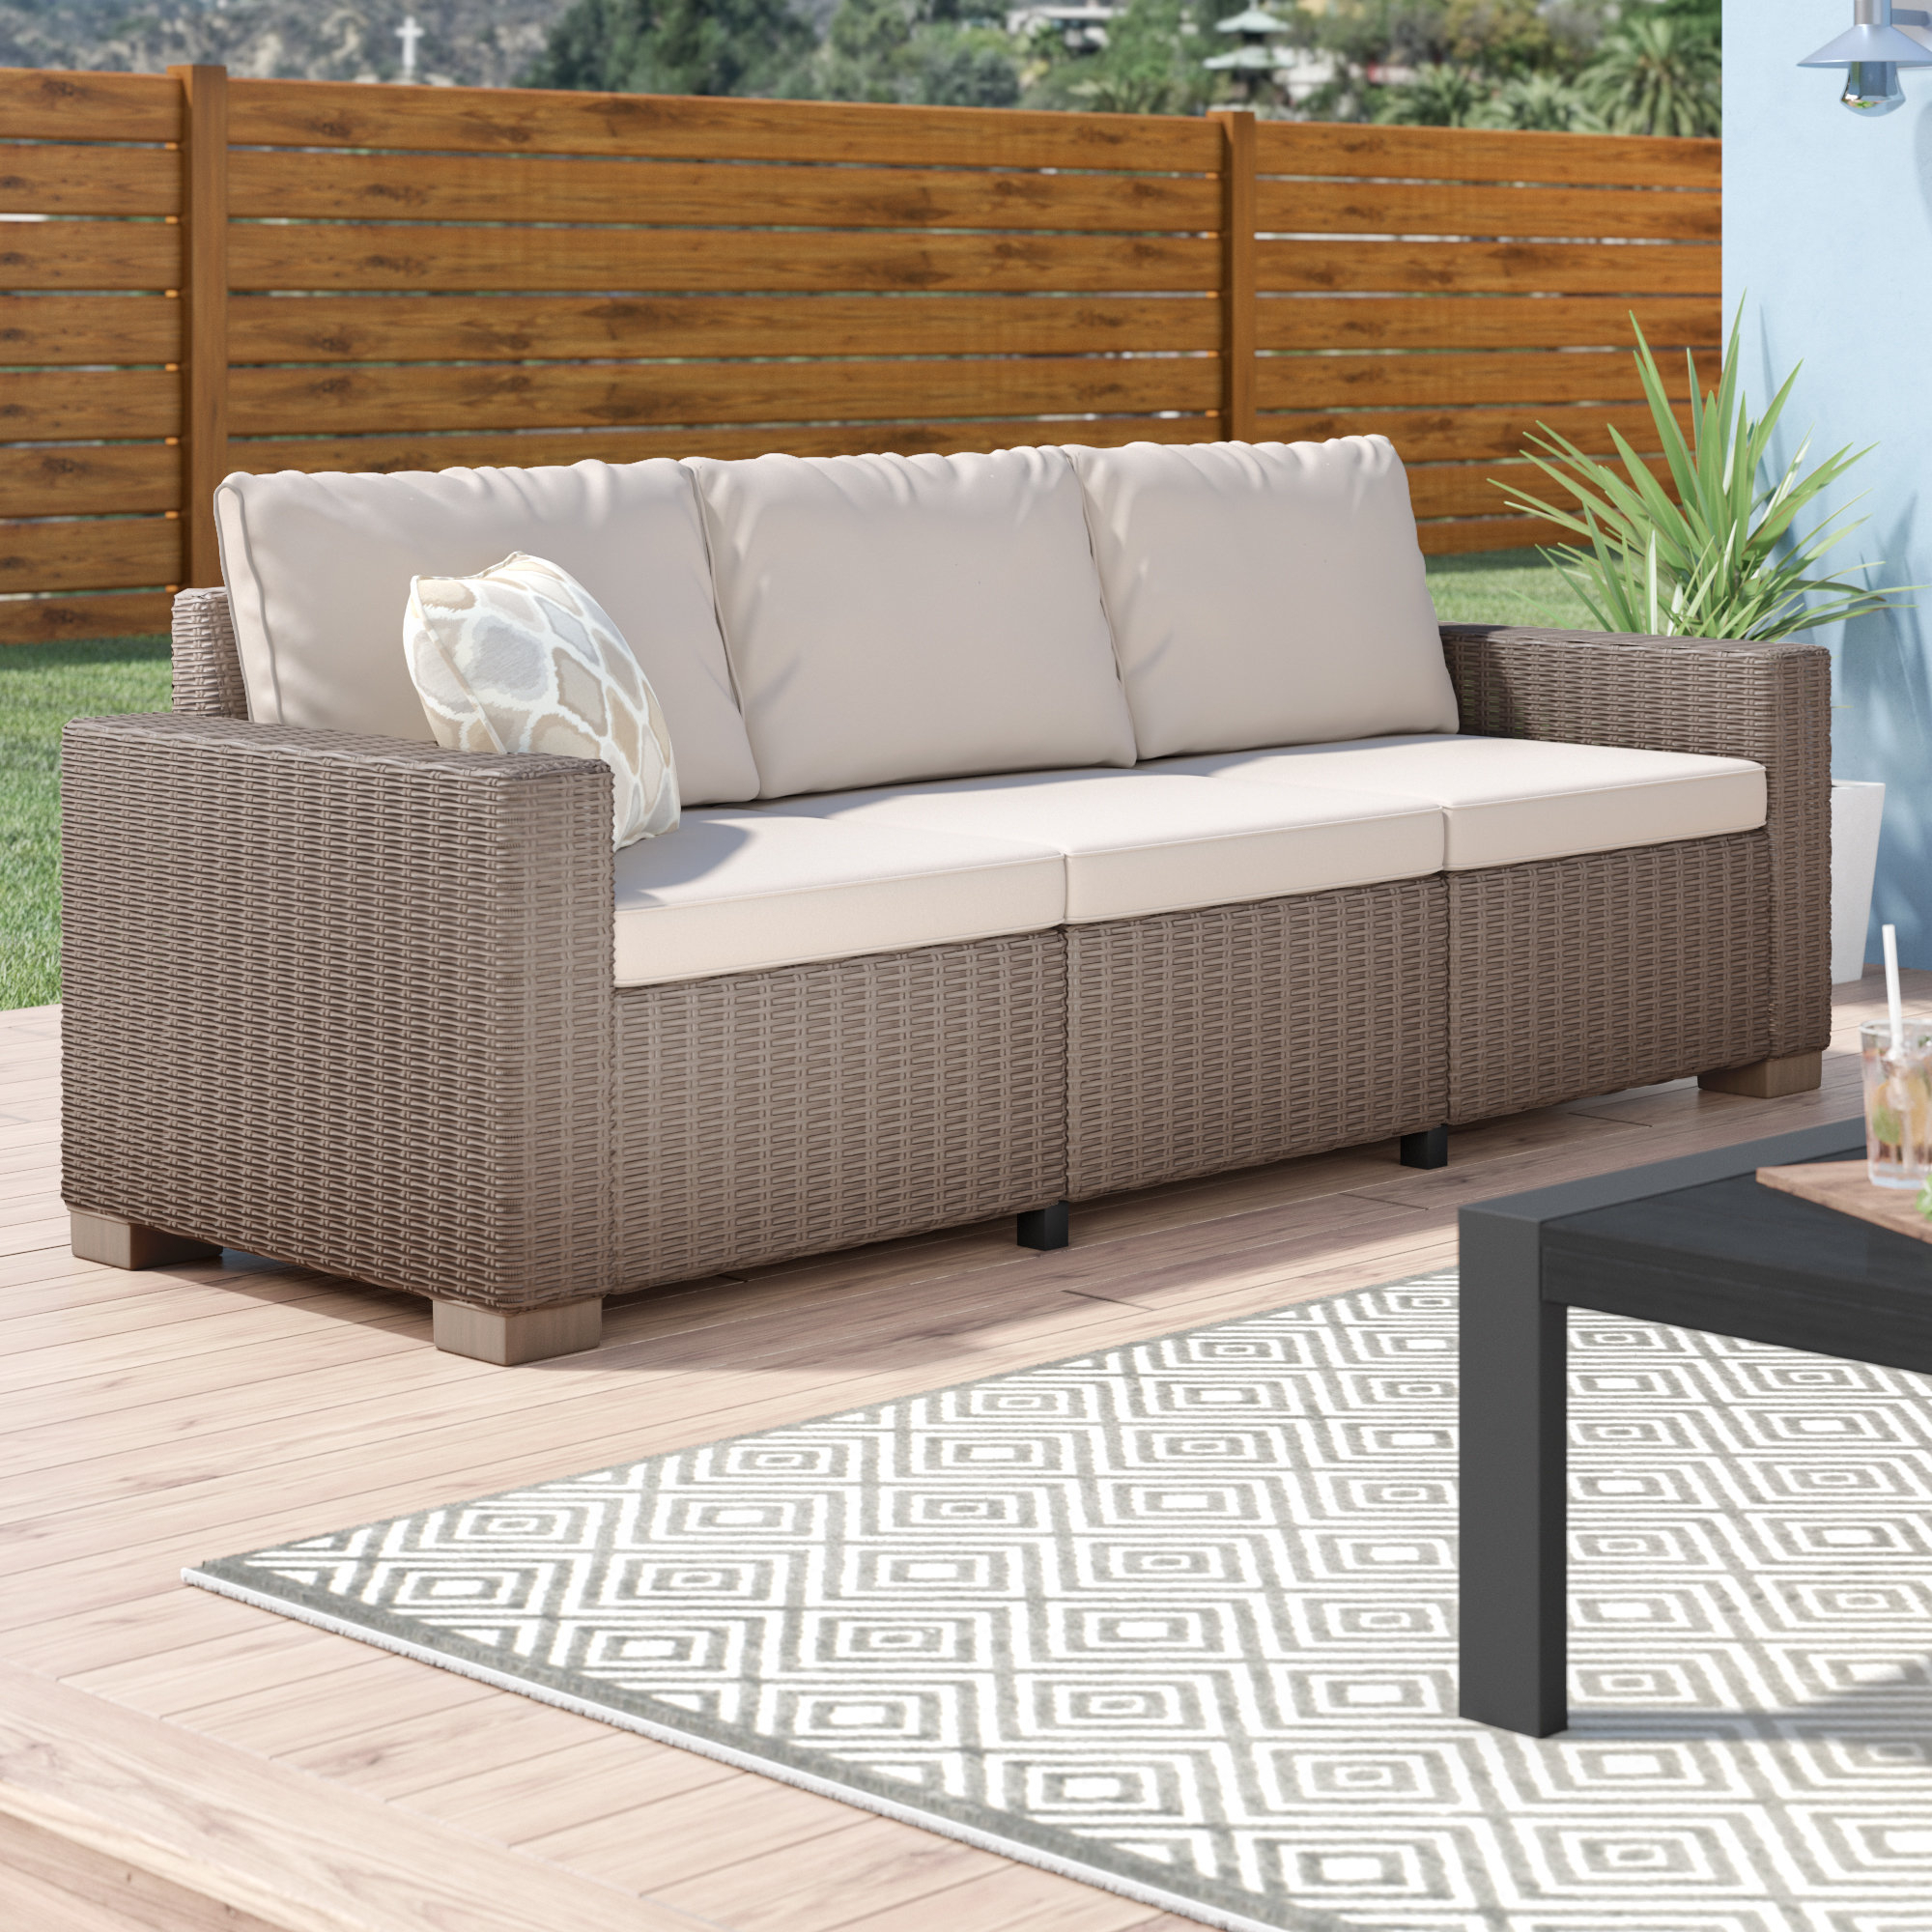 Most Recent Stallcup Patio Sofa With Cushions Inside Rowley Patio Sofas Set With Cushions (View 5 of 20)